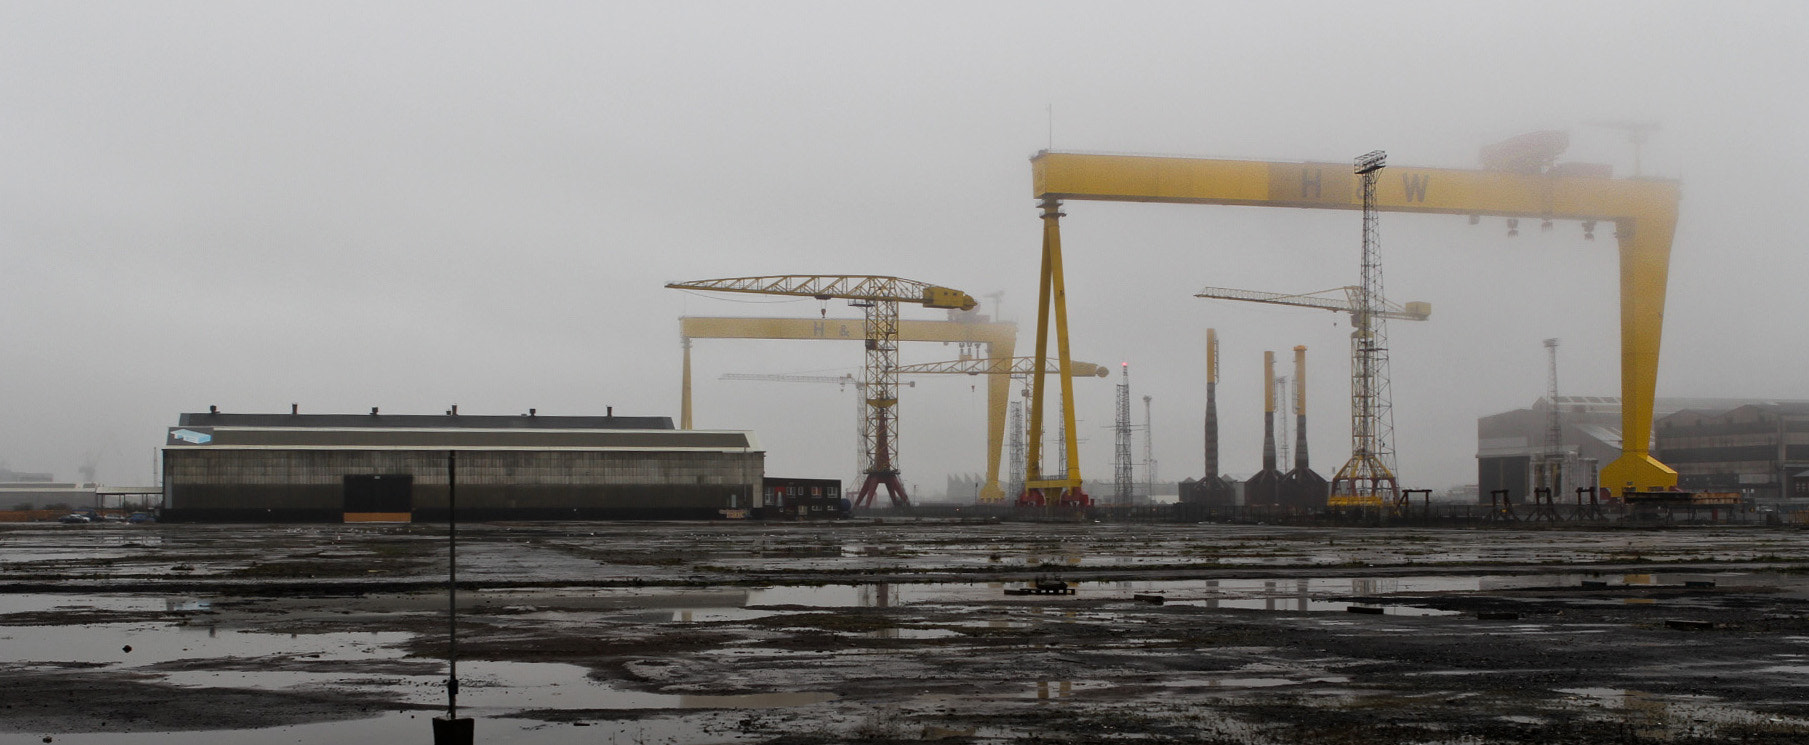 Photograph Harland and Wolff Belfast by Shannon Ley on 500px